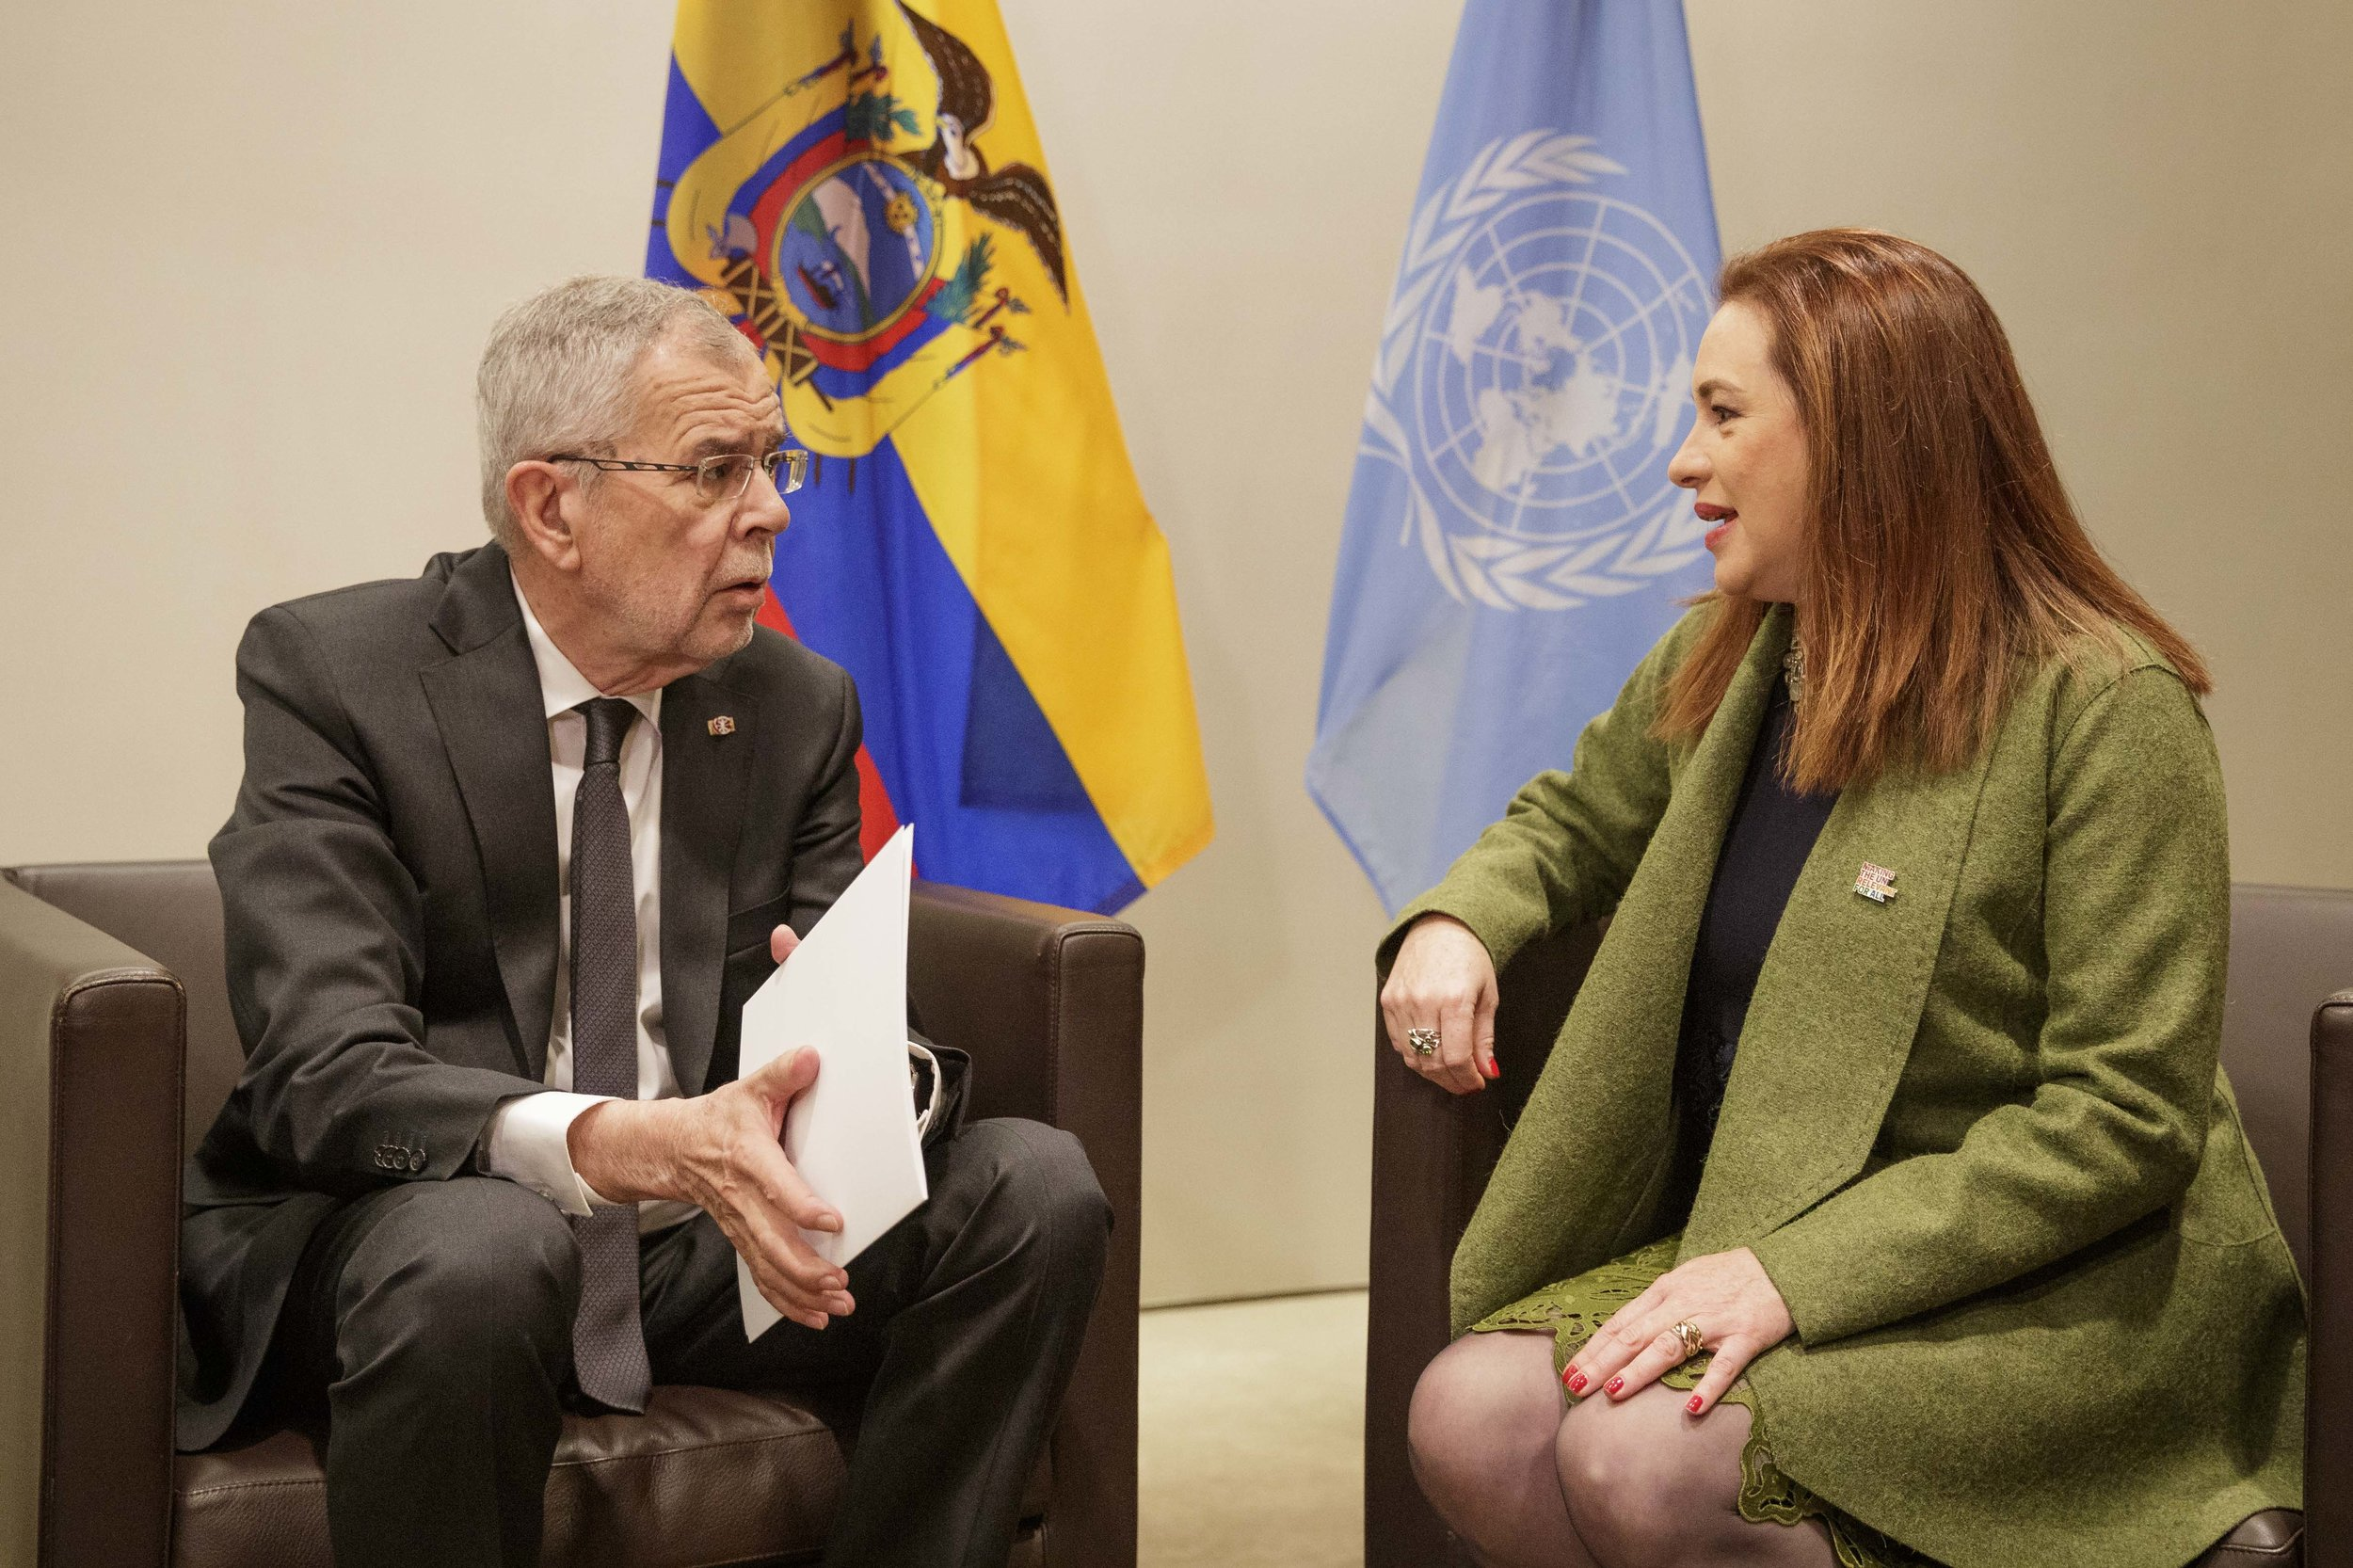 With María Fernanda Espinosa Garcés, President of the 73rd session of the United Nations General Assembly